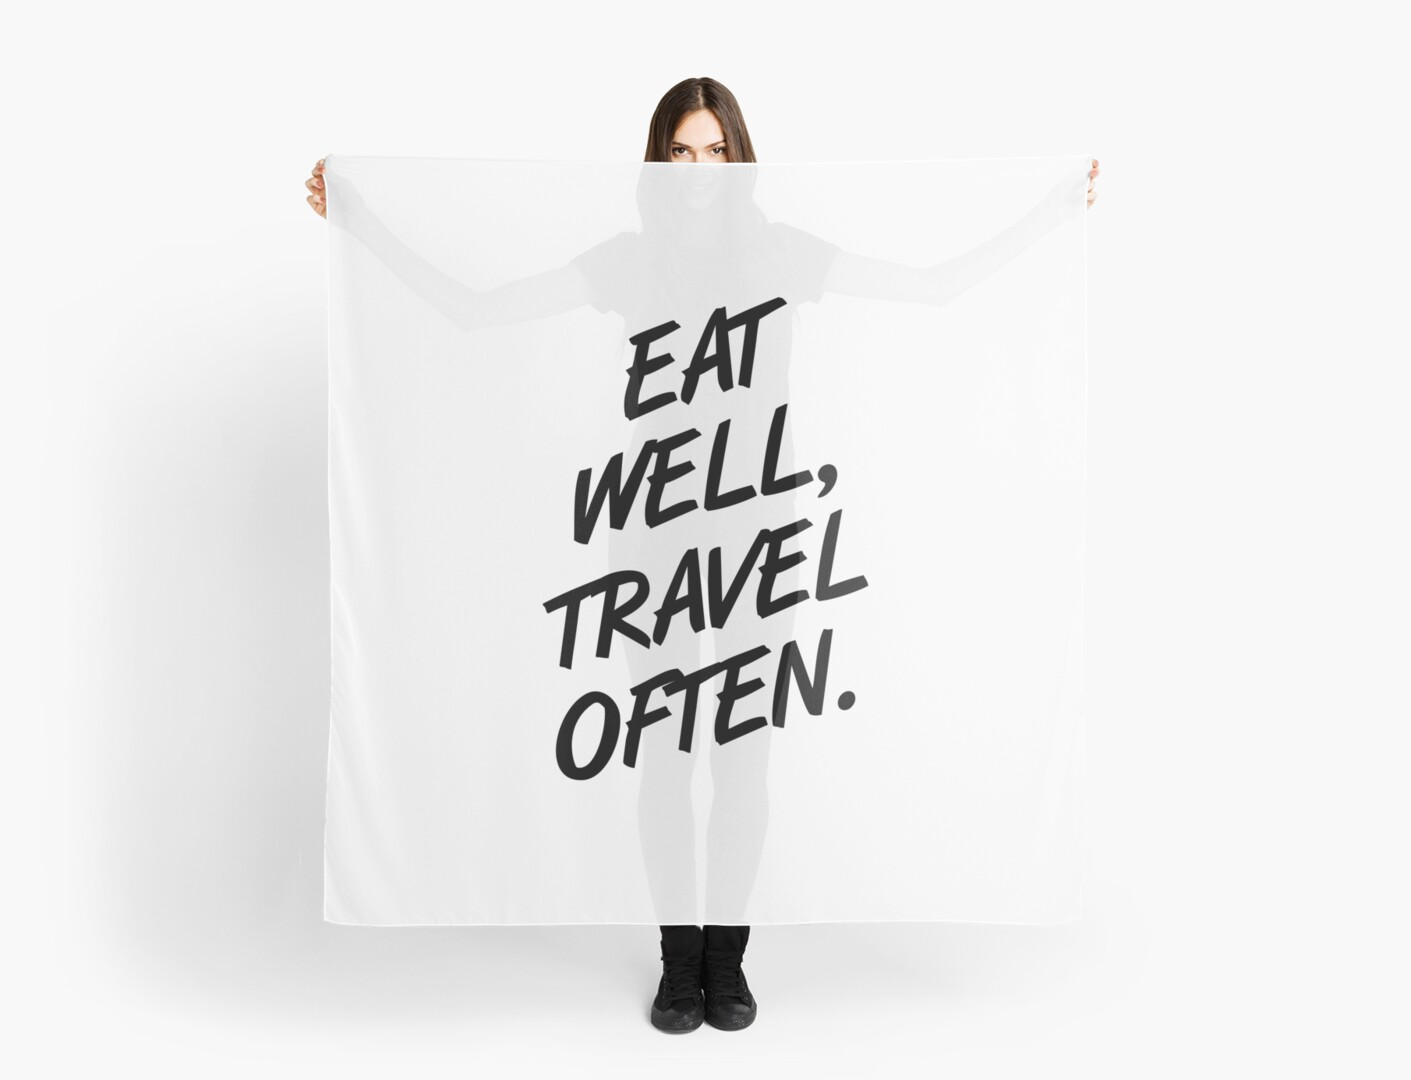 Eat Well, Travel Often by David0112